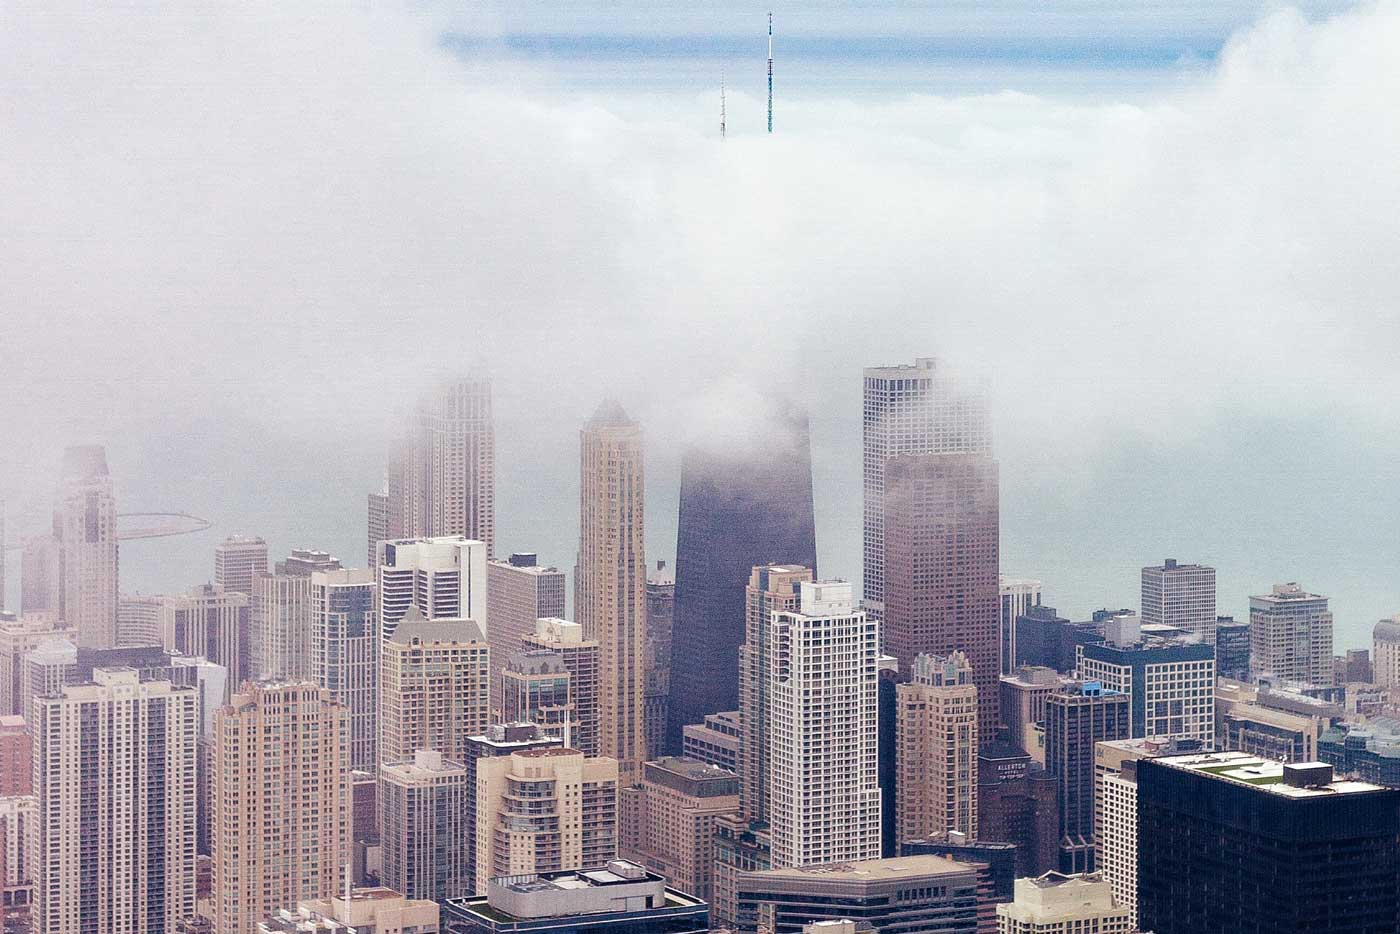 Chicago skyline in the fog.